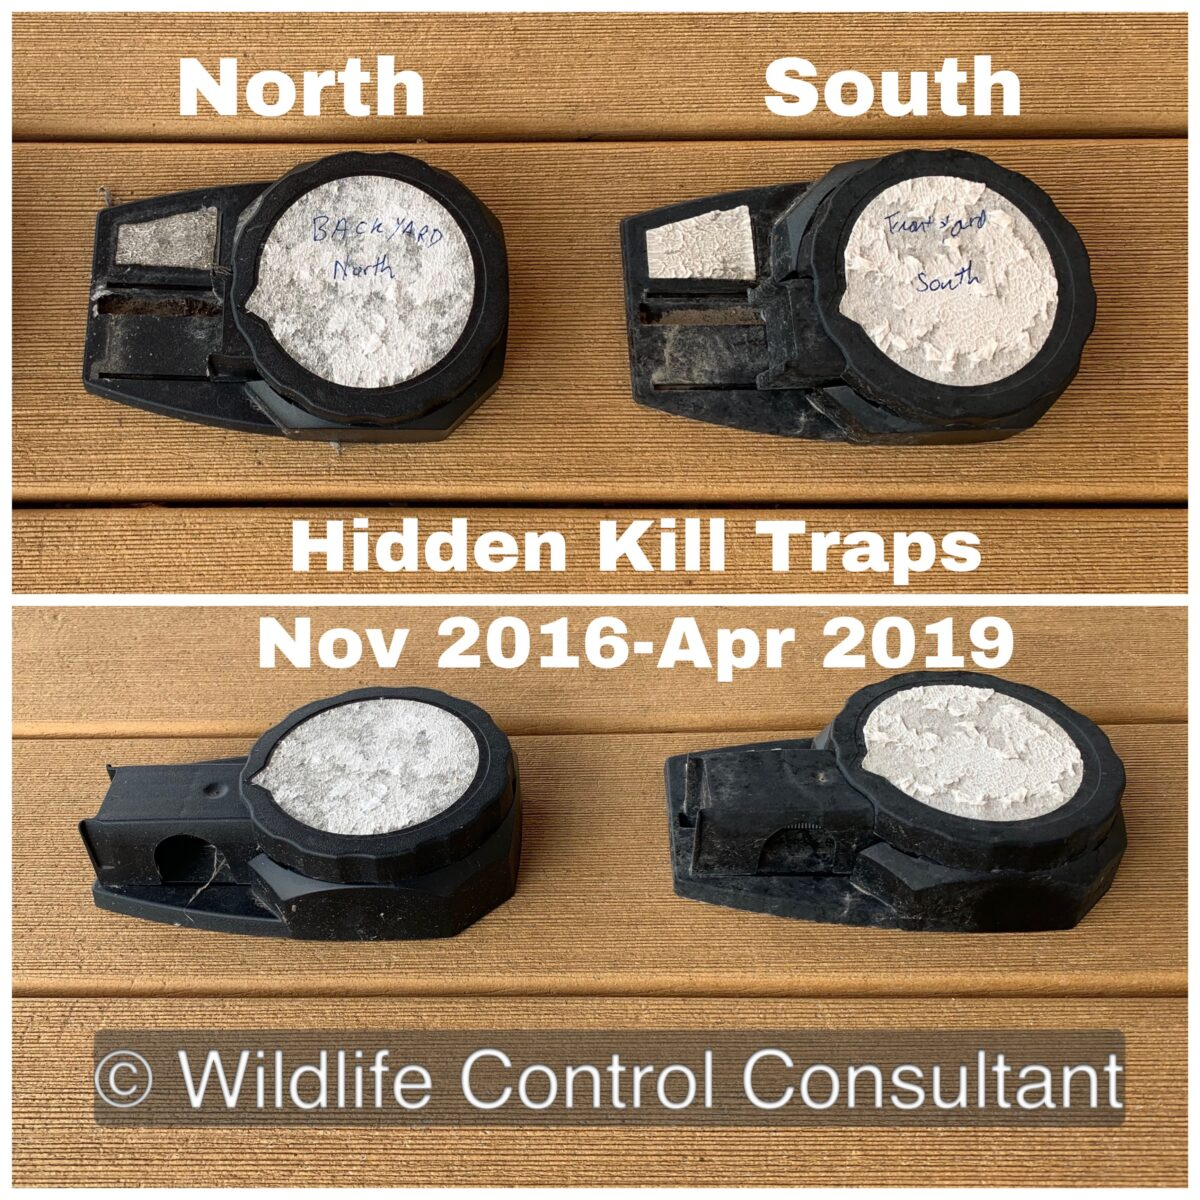 Hidden Kill traps after being outdoors about 30 months